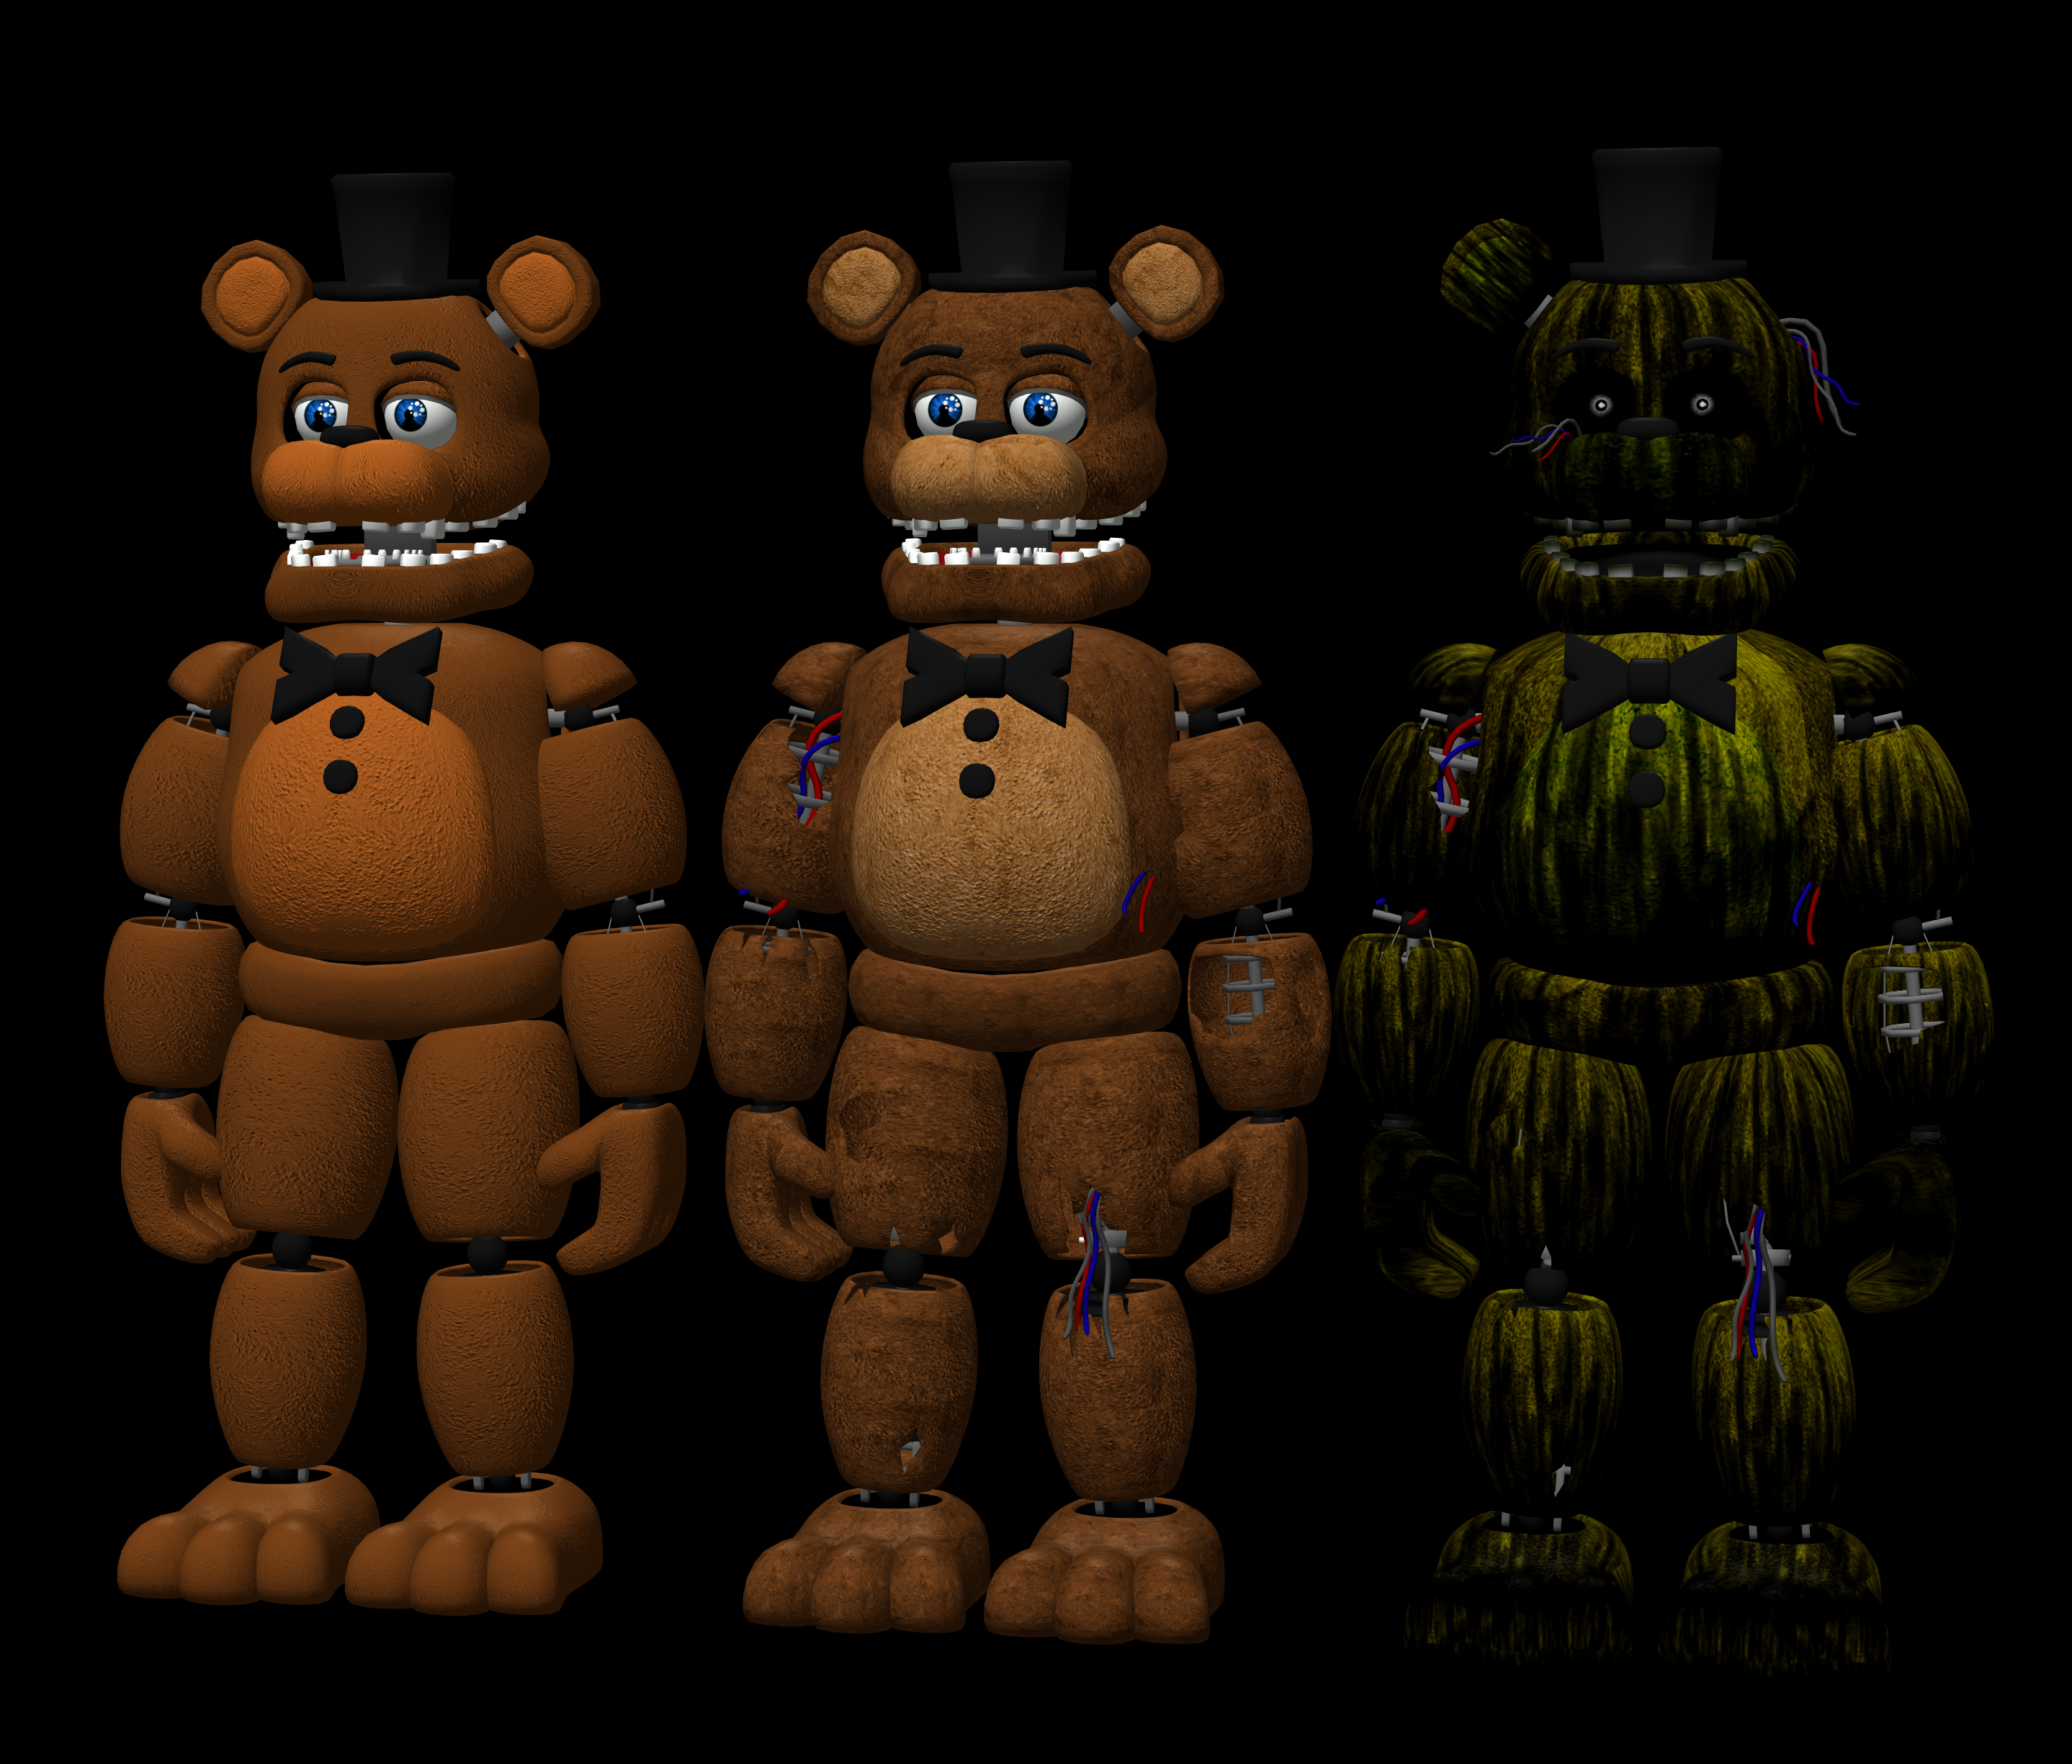 Fnaf 2-3 Freddy Pack By RealMoonlight On DeviantArt